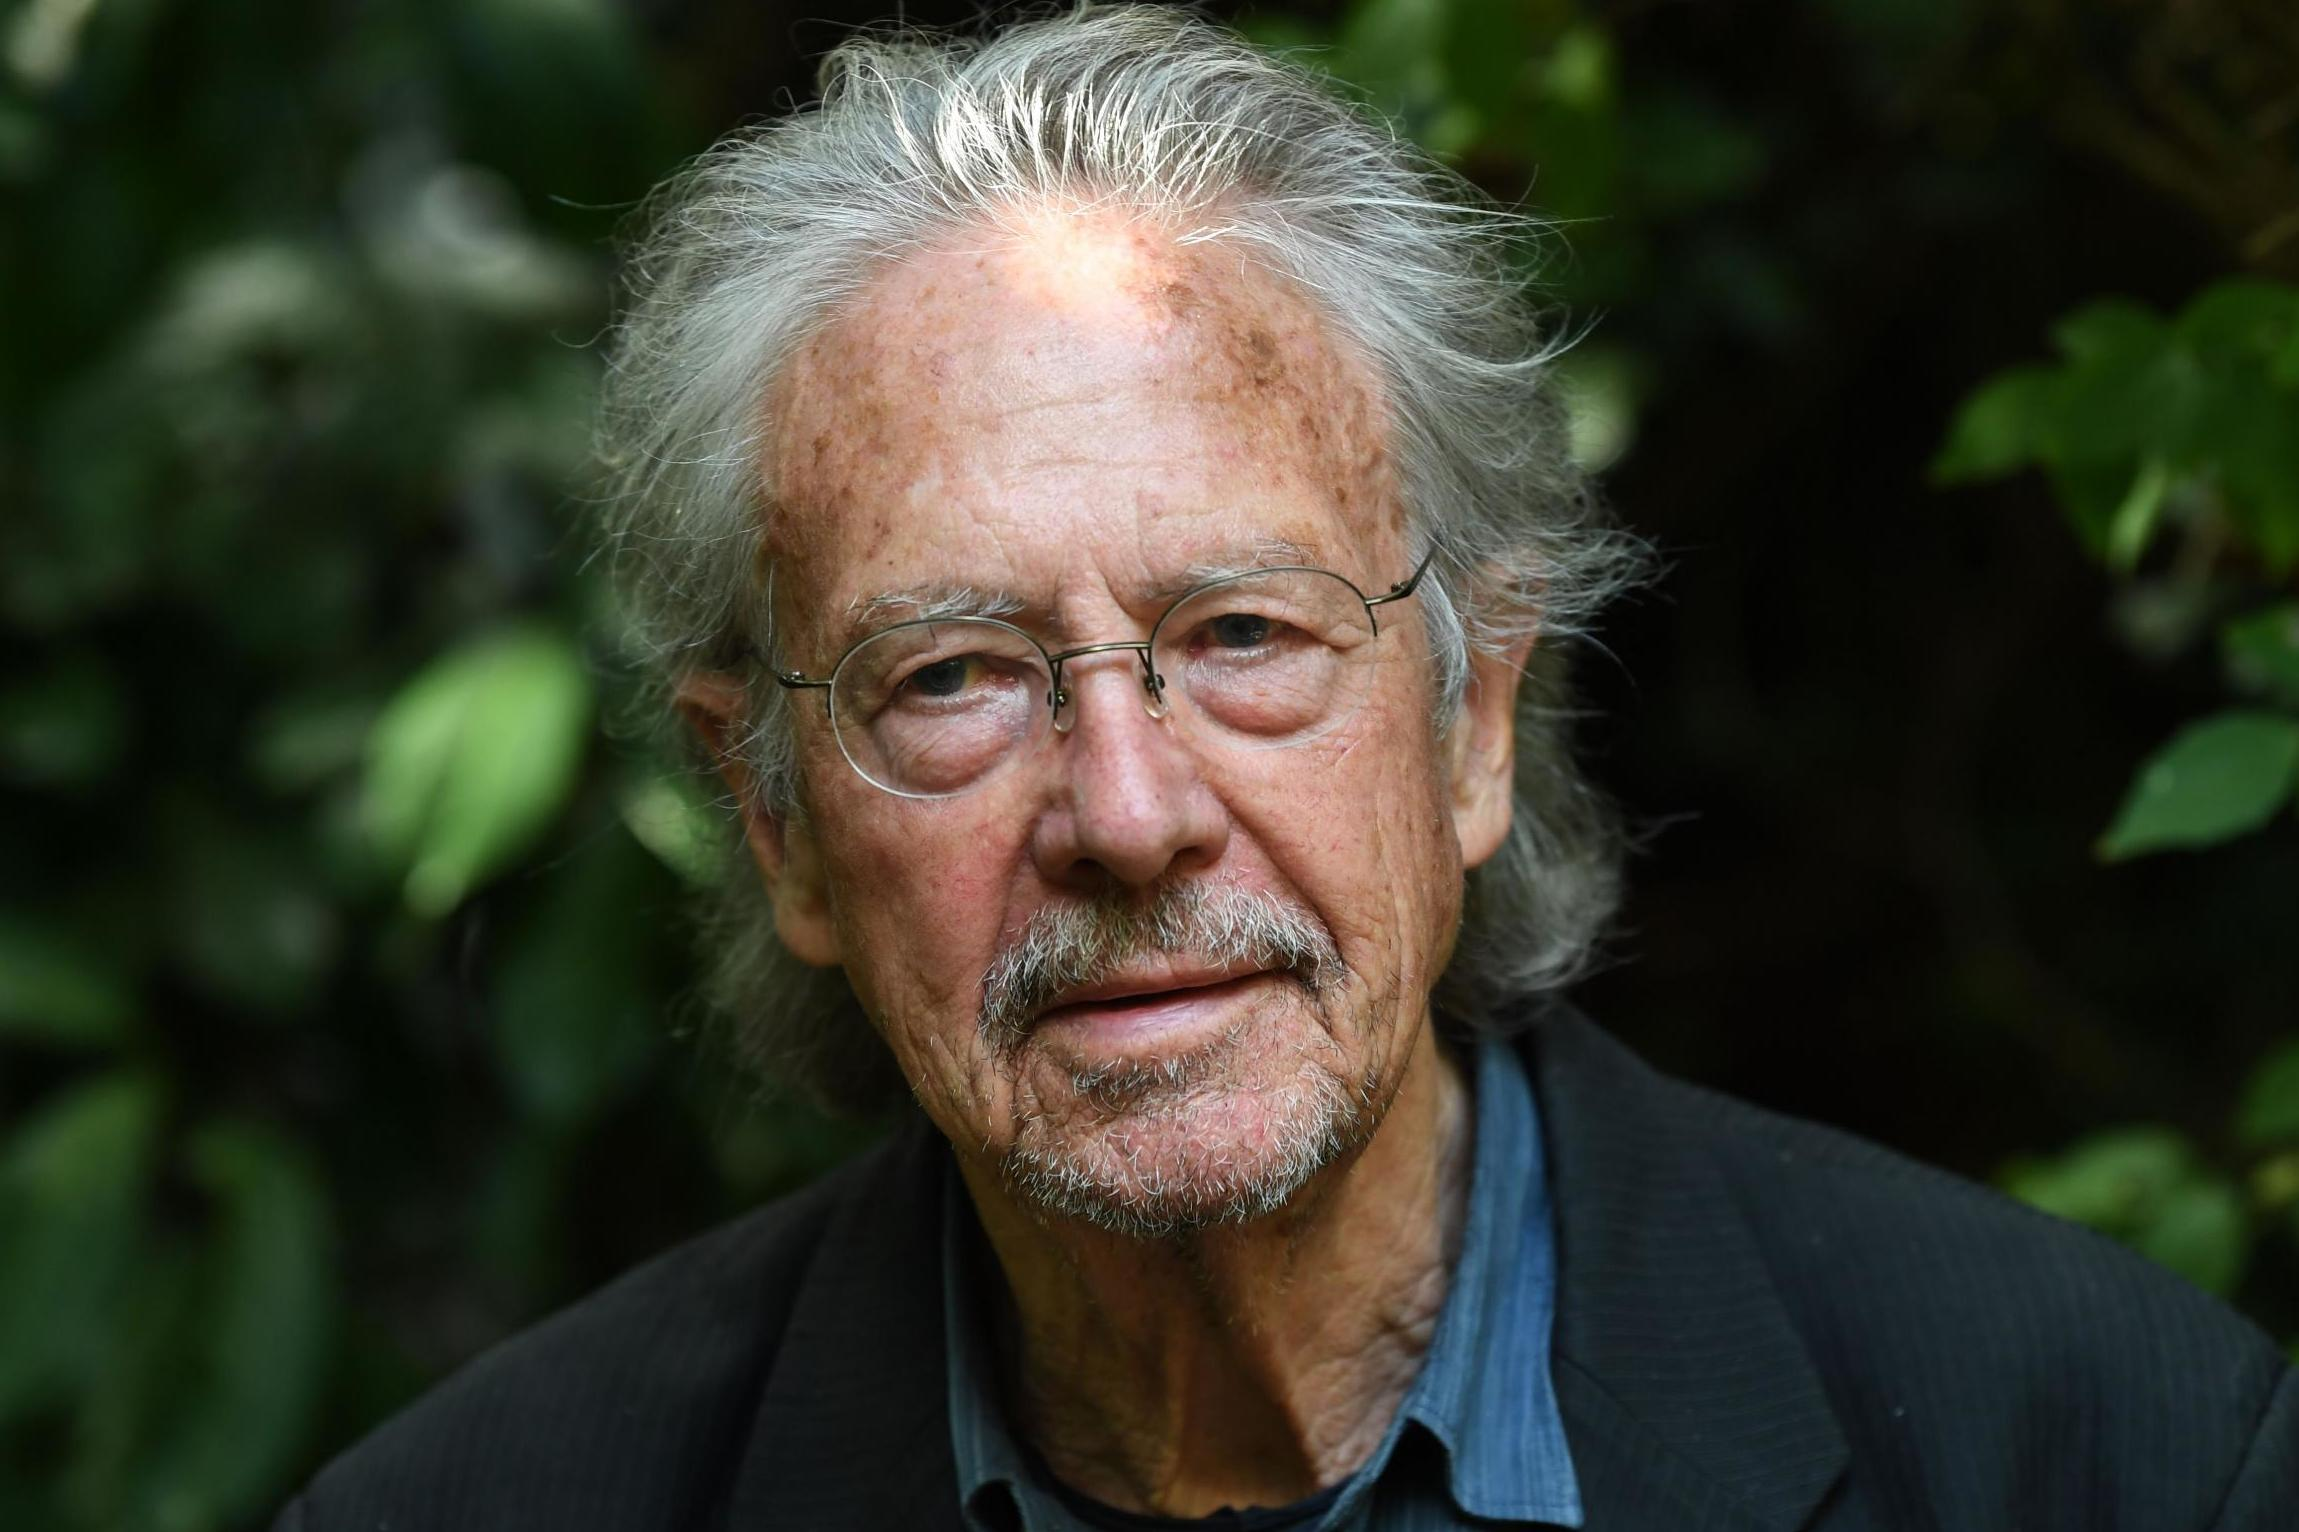 Peter Handke controversy: Several countries to boycott Nobel ceremony over literature winner